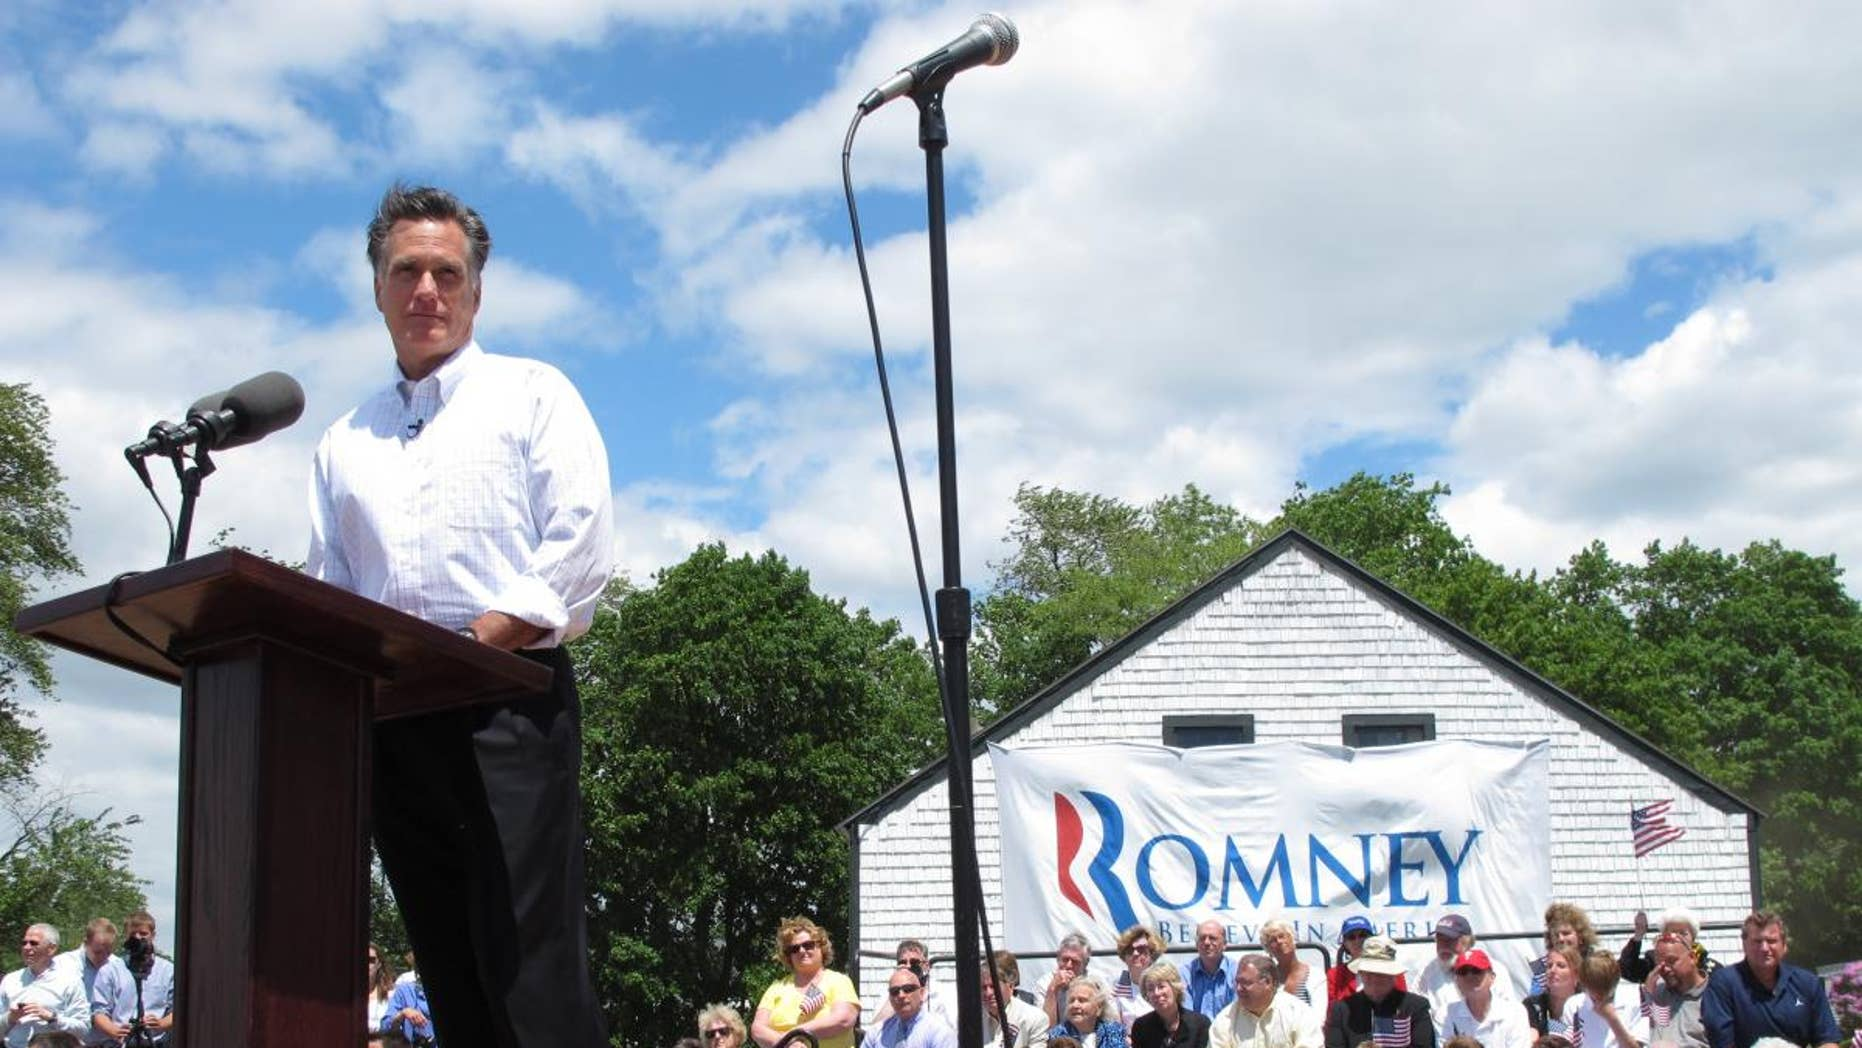 Former Gov. Mitt Romney announcing his candidacy for the Republican nomination June 2, 2011. (FOX News Photo)